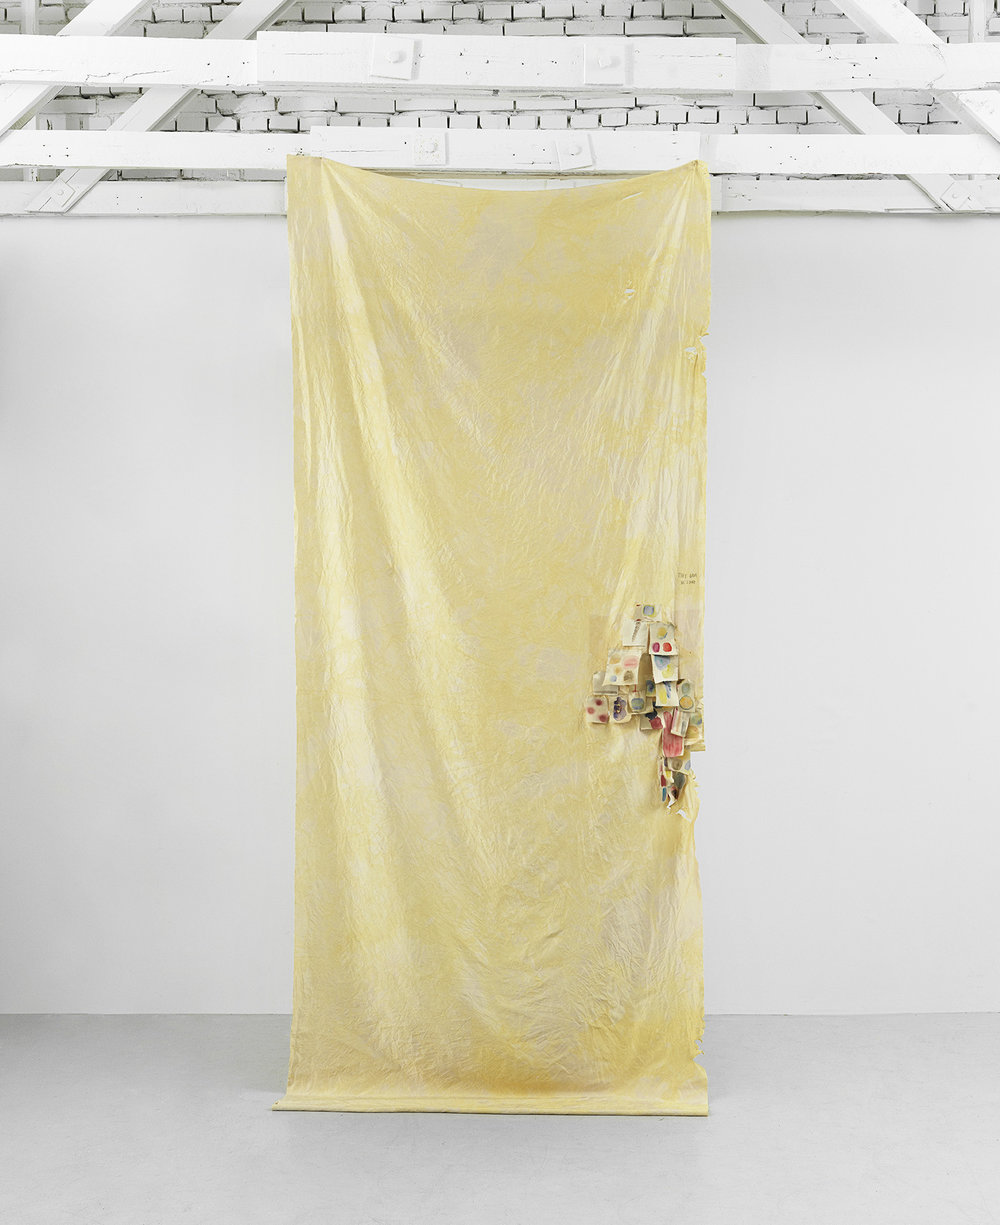 Peter Brandt. Monument to Sexual Violence, 2018. Bleached silk, watercolor and pencil. 330 x 135 cm.